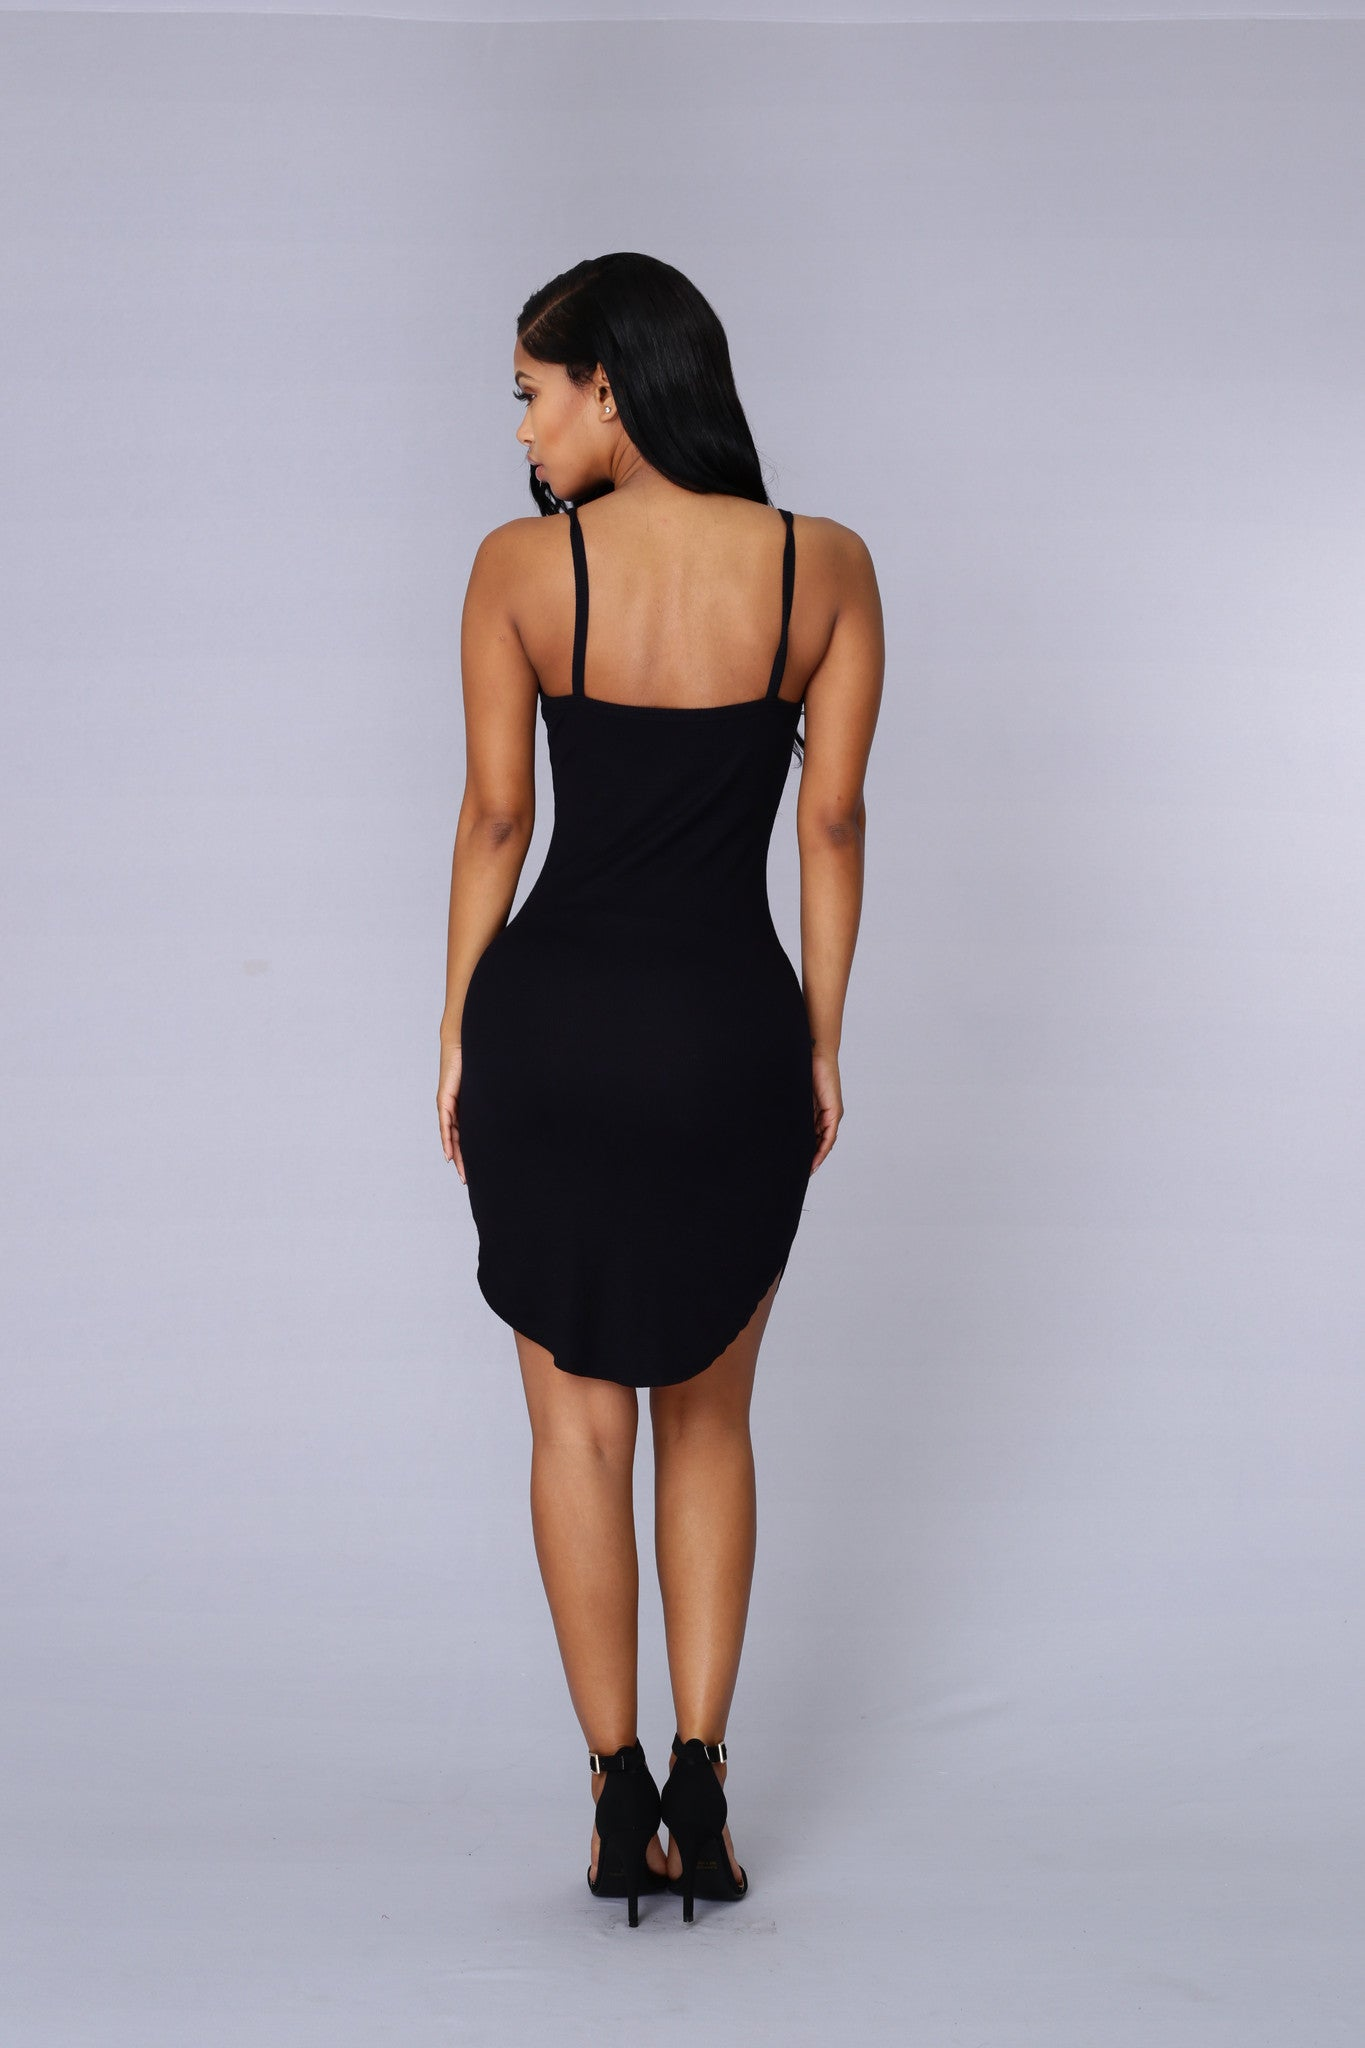 Black dress in dream pictures